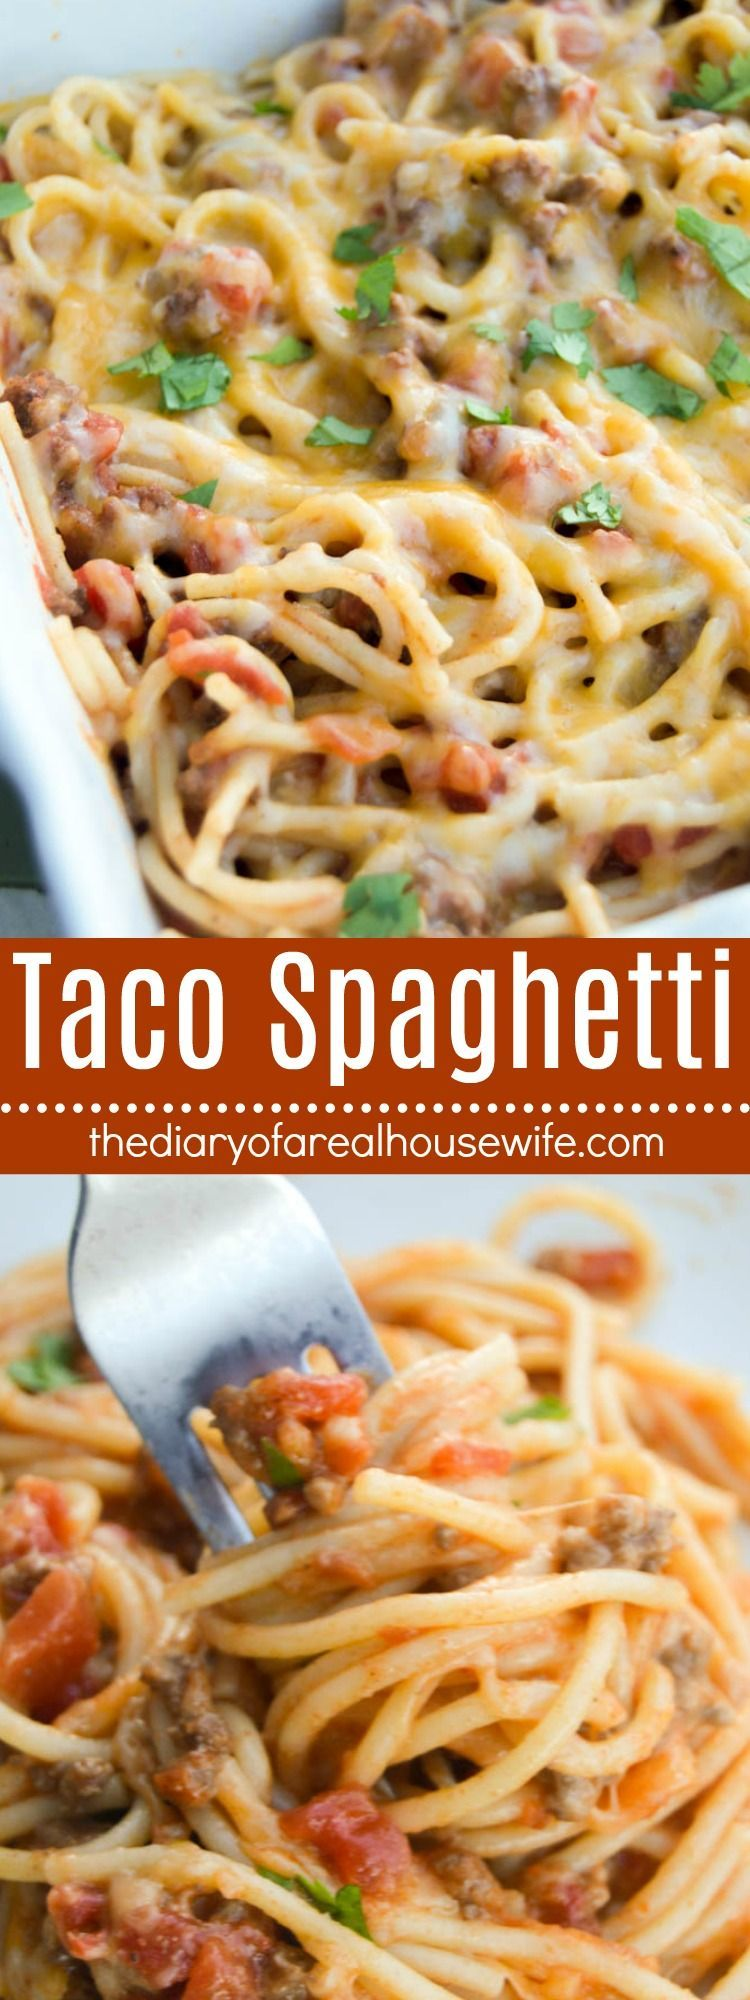 Eating Spaghetti any other way!! This was so good and my entire family loved it. You must try this easy dinner recipe, Taco Spaghetti.